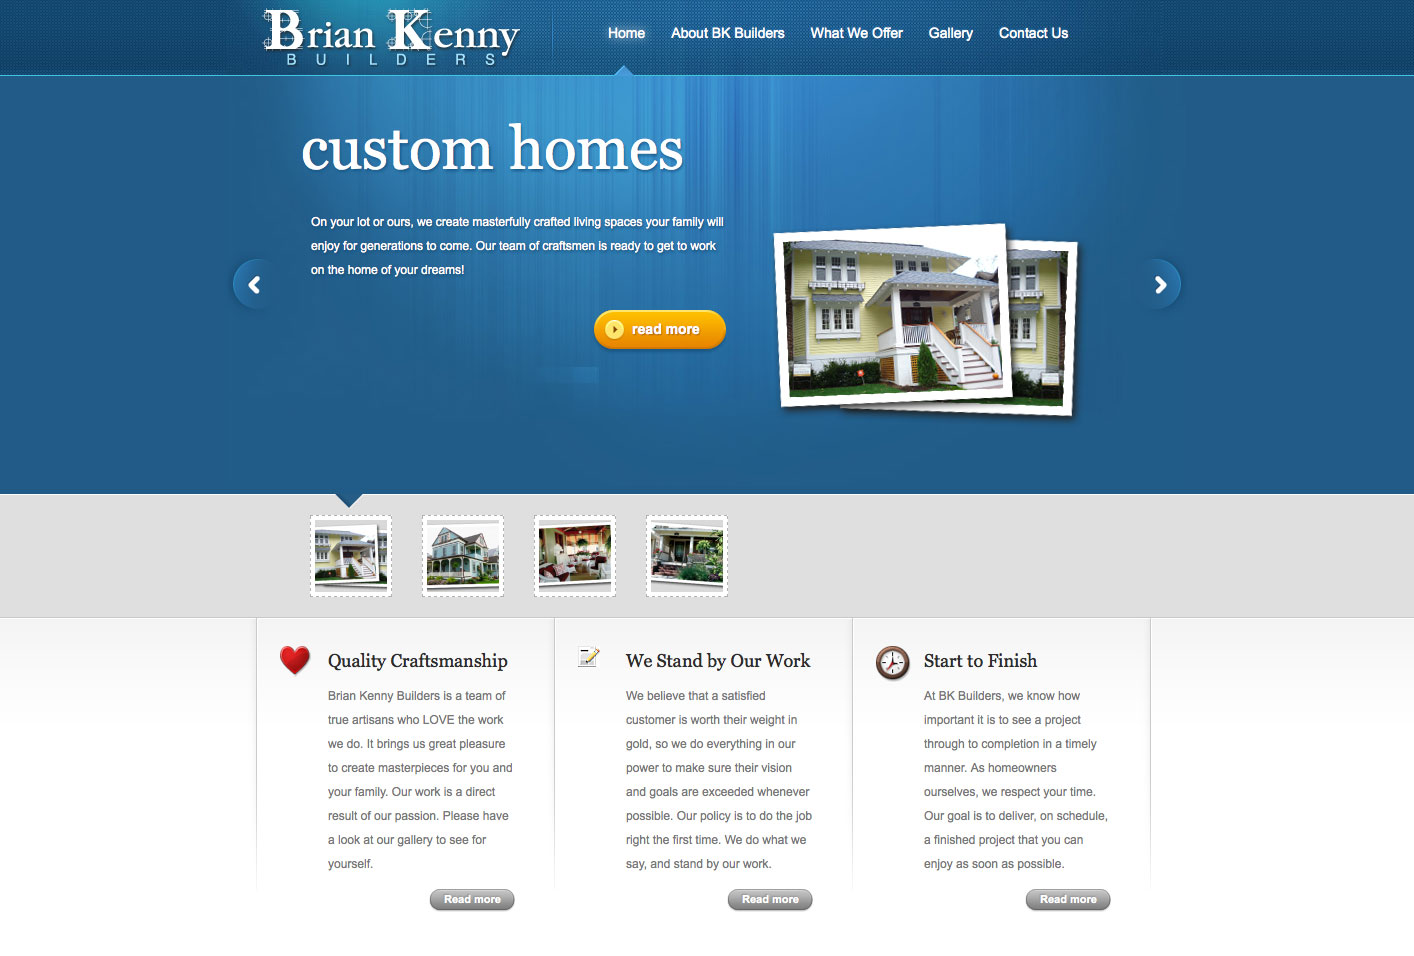 Brian Kenny Website